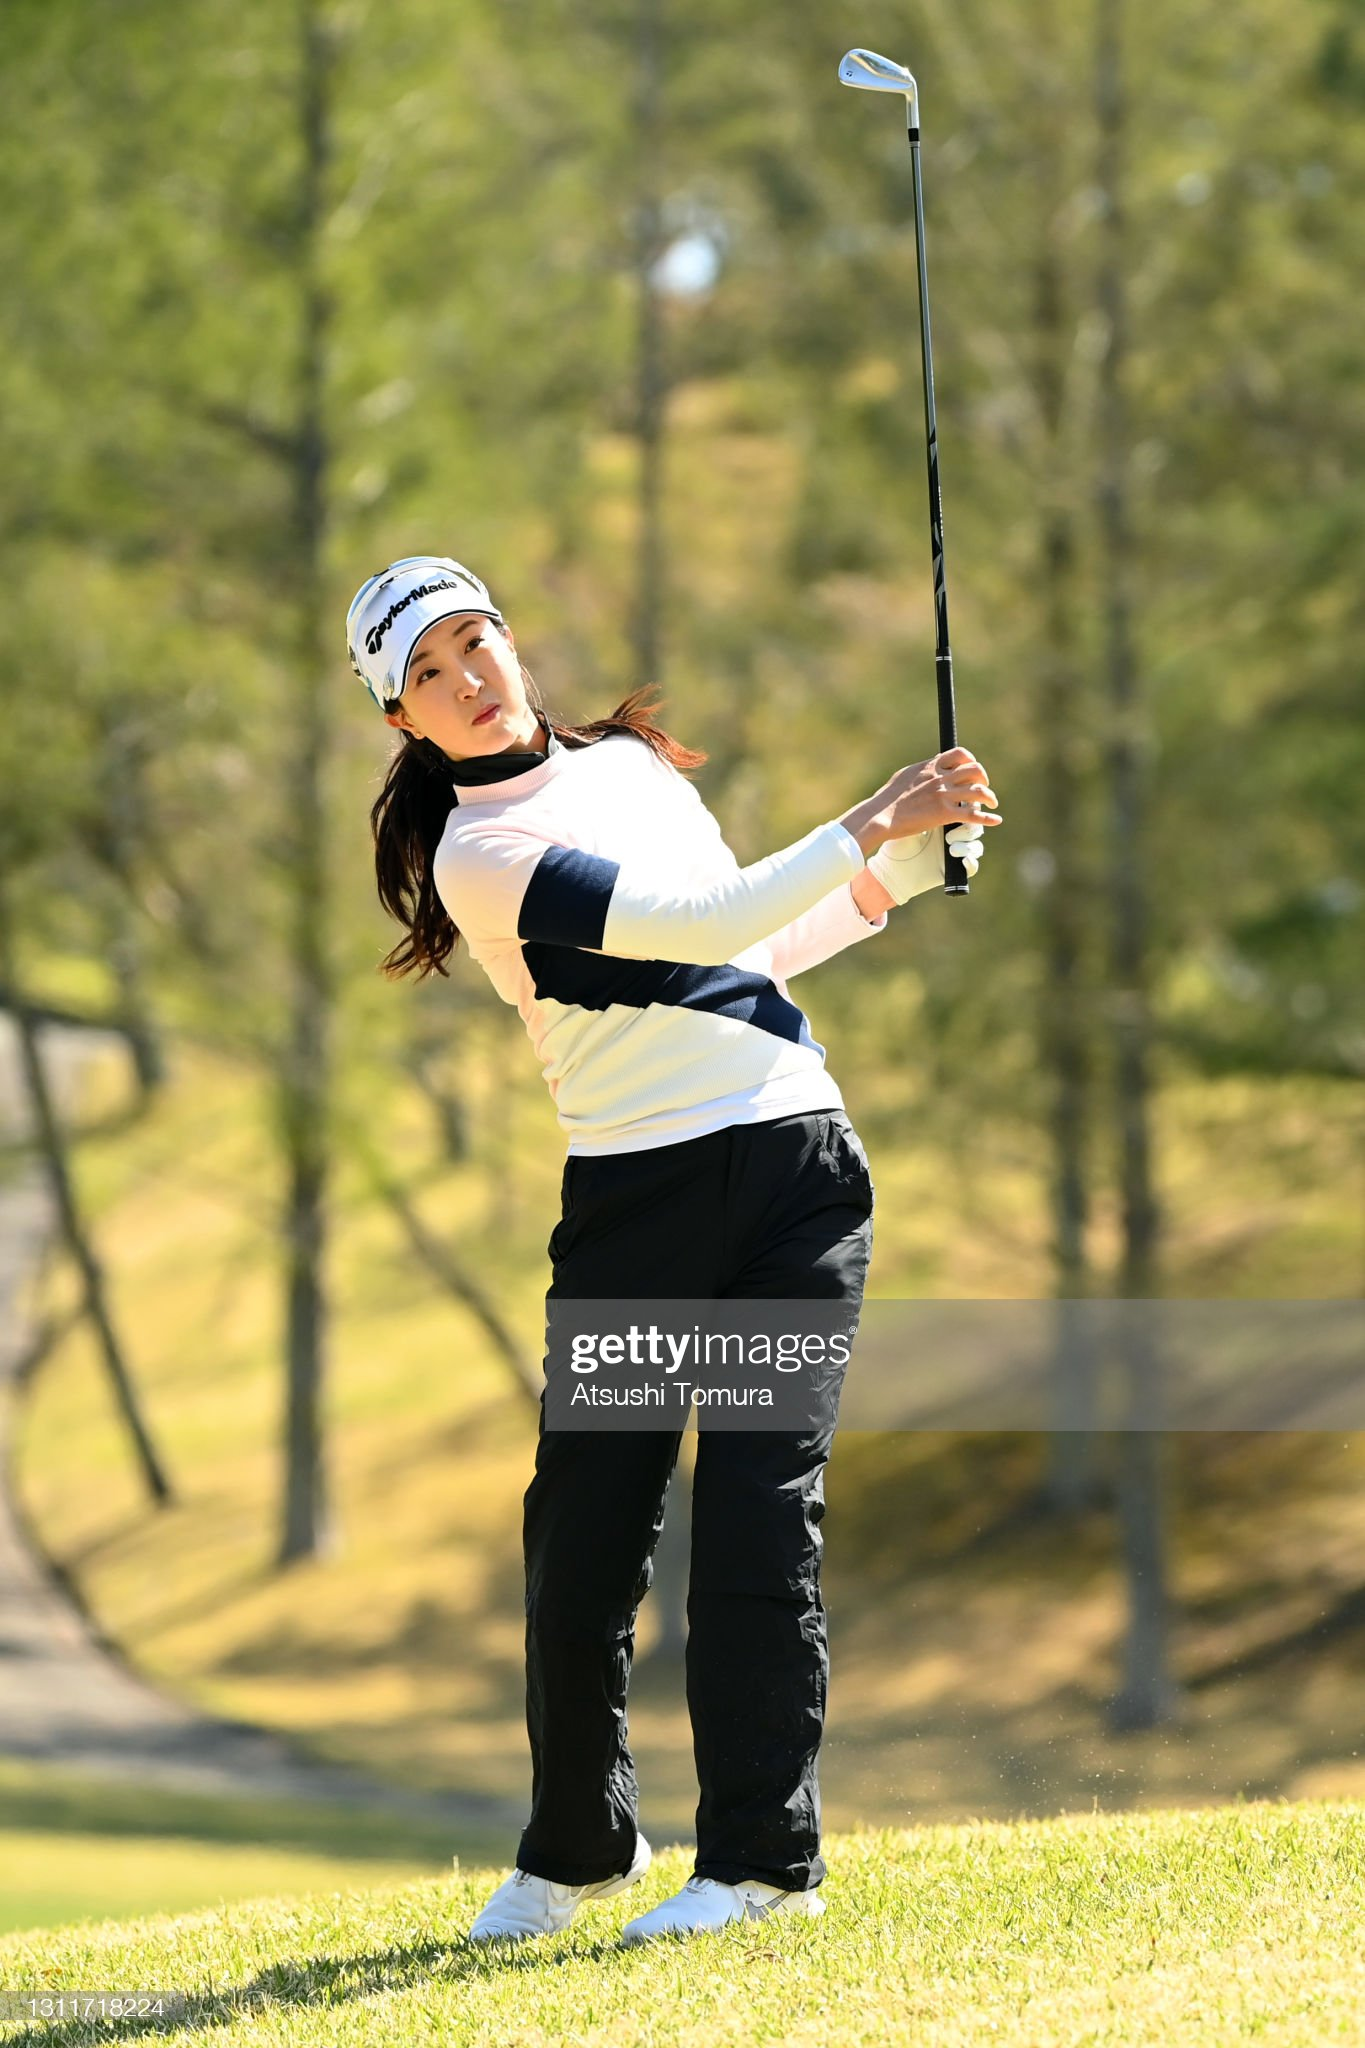 https://media.gettyimages.com/photos/jaeeun-chung-of-south-korea-hits-her-second-shot-on-the-5th-hole-the-picture-id1311718224?s=2048x2048